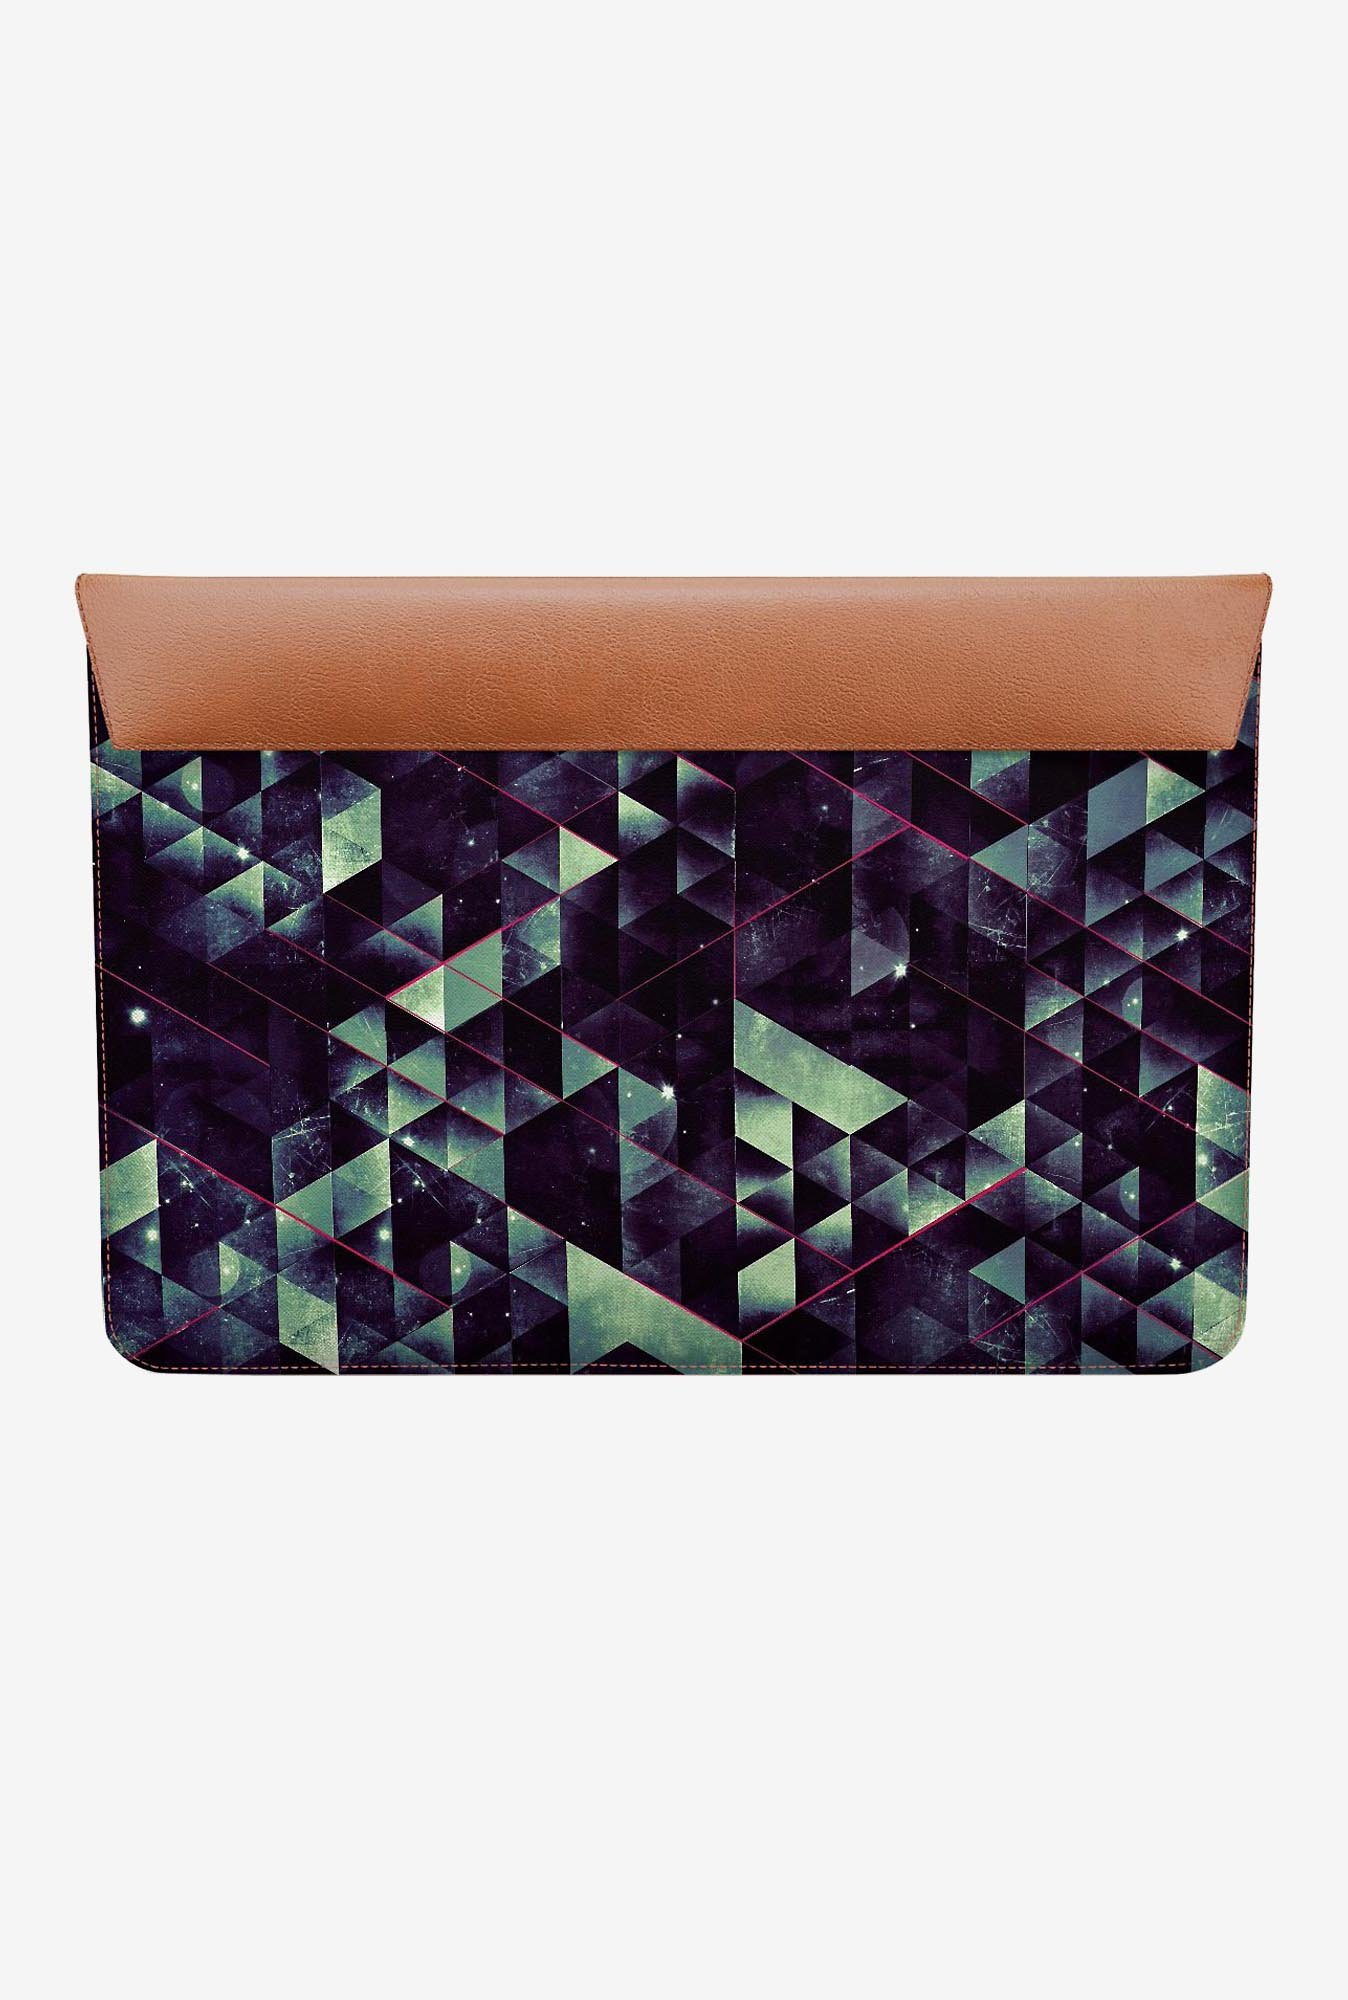 "DailyObjects Lyne Styrshyp Macbook Air 11"" Envelope Sleeve"